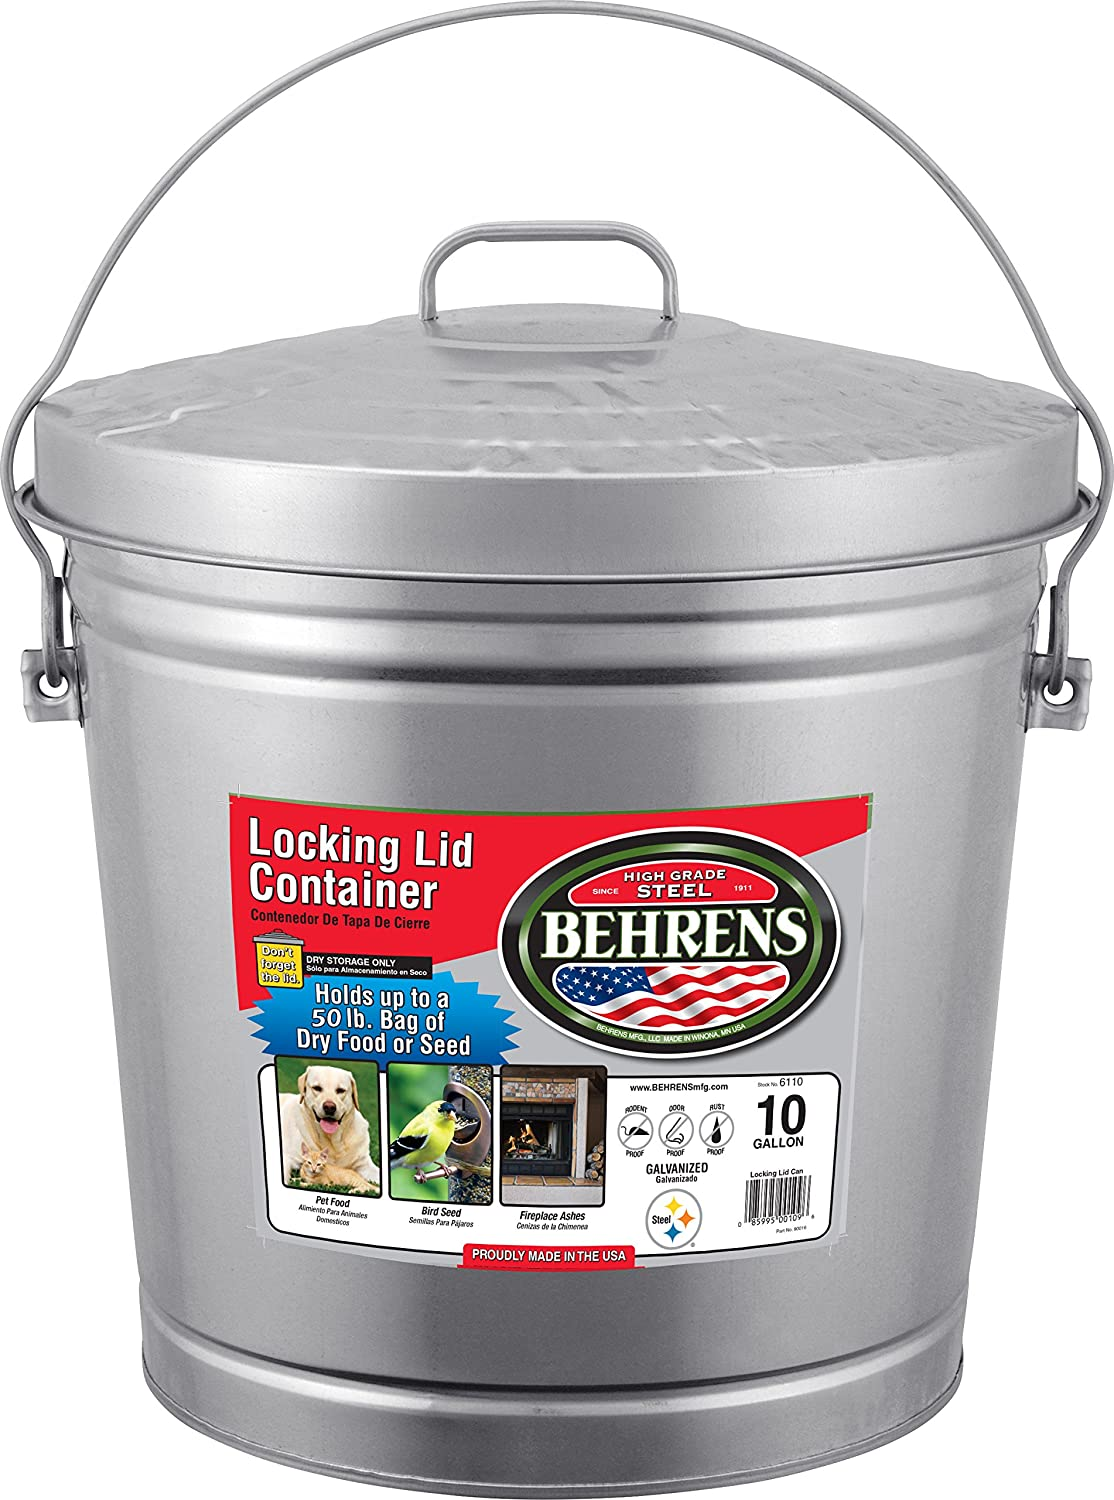 20 Best Trash Can Cyber Monday Deals And Sales | 2019 11